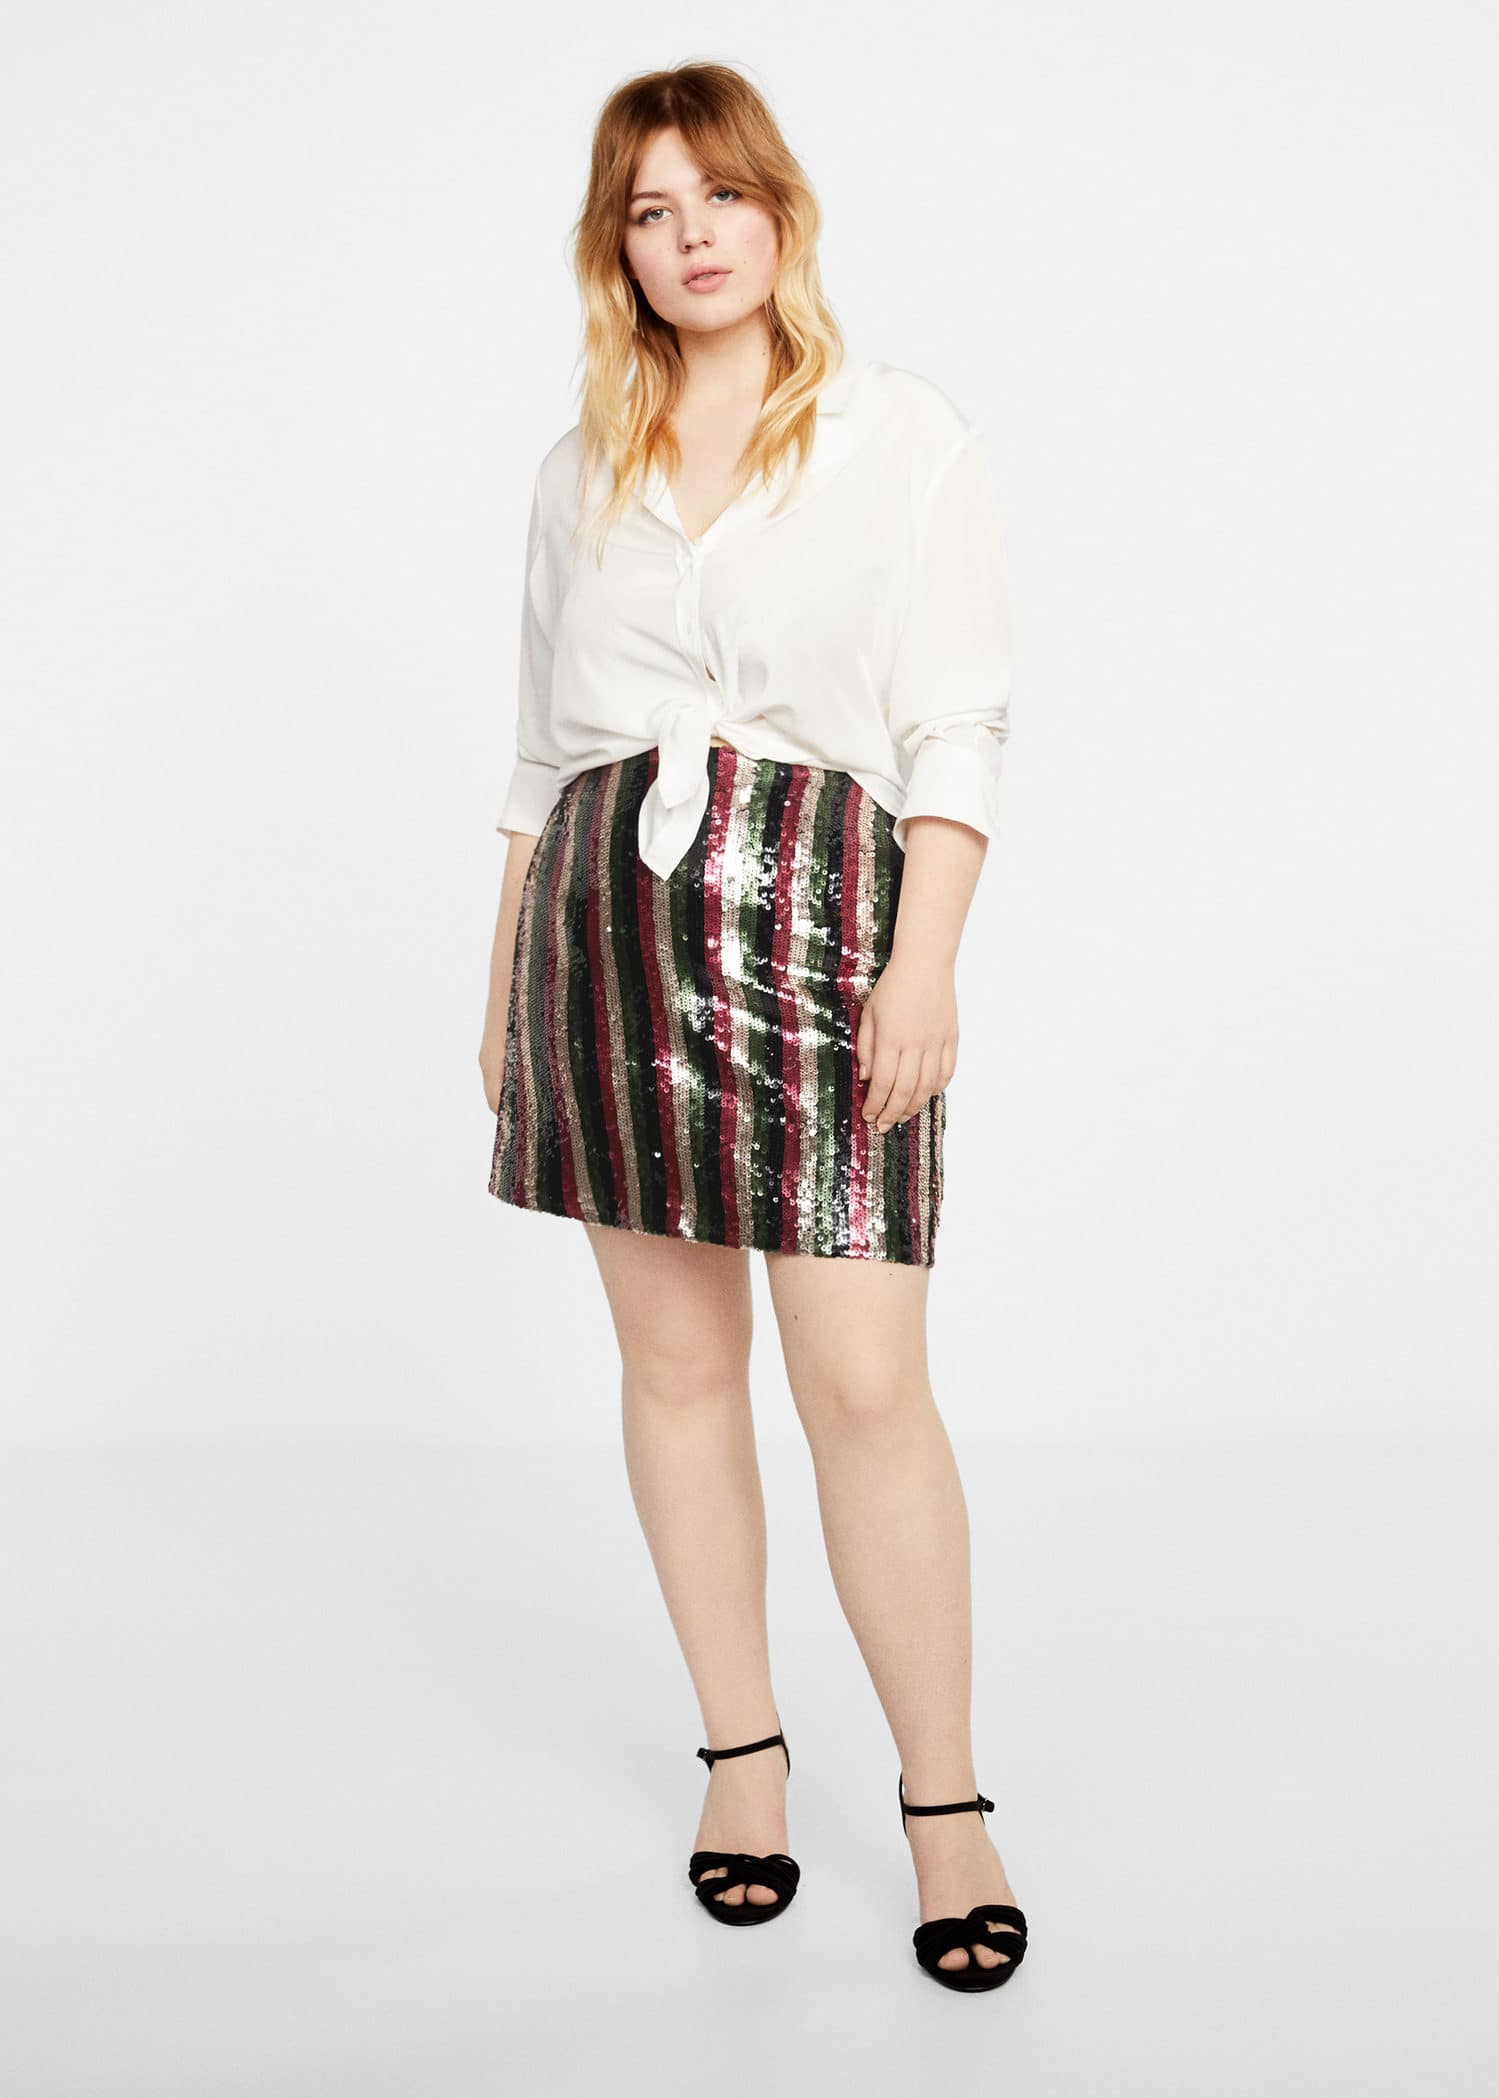 243d525160 Sequin miniskirt - Plus sizes | Violeta by Mango Oman